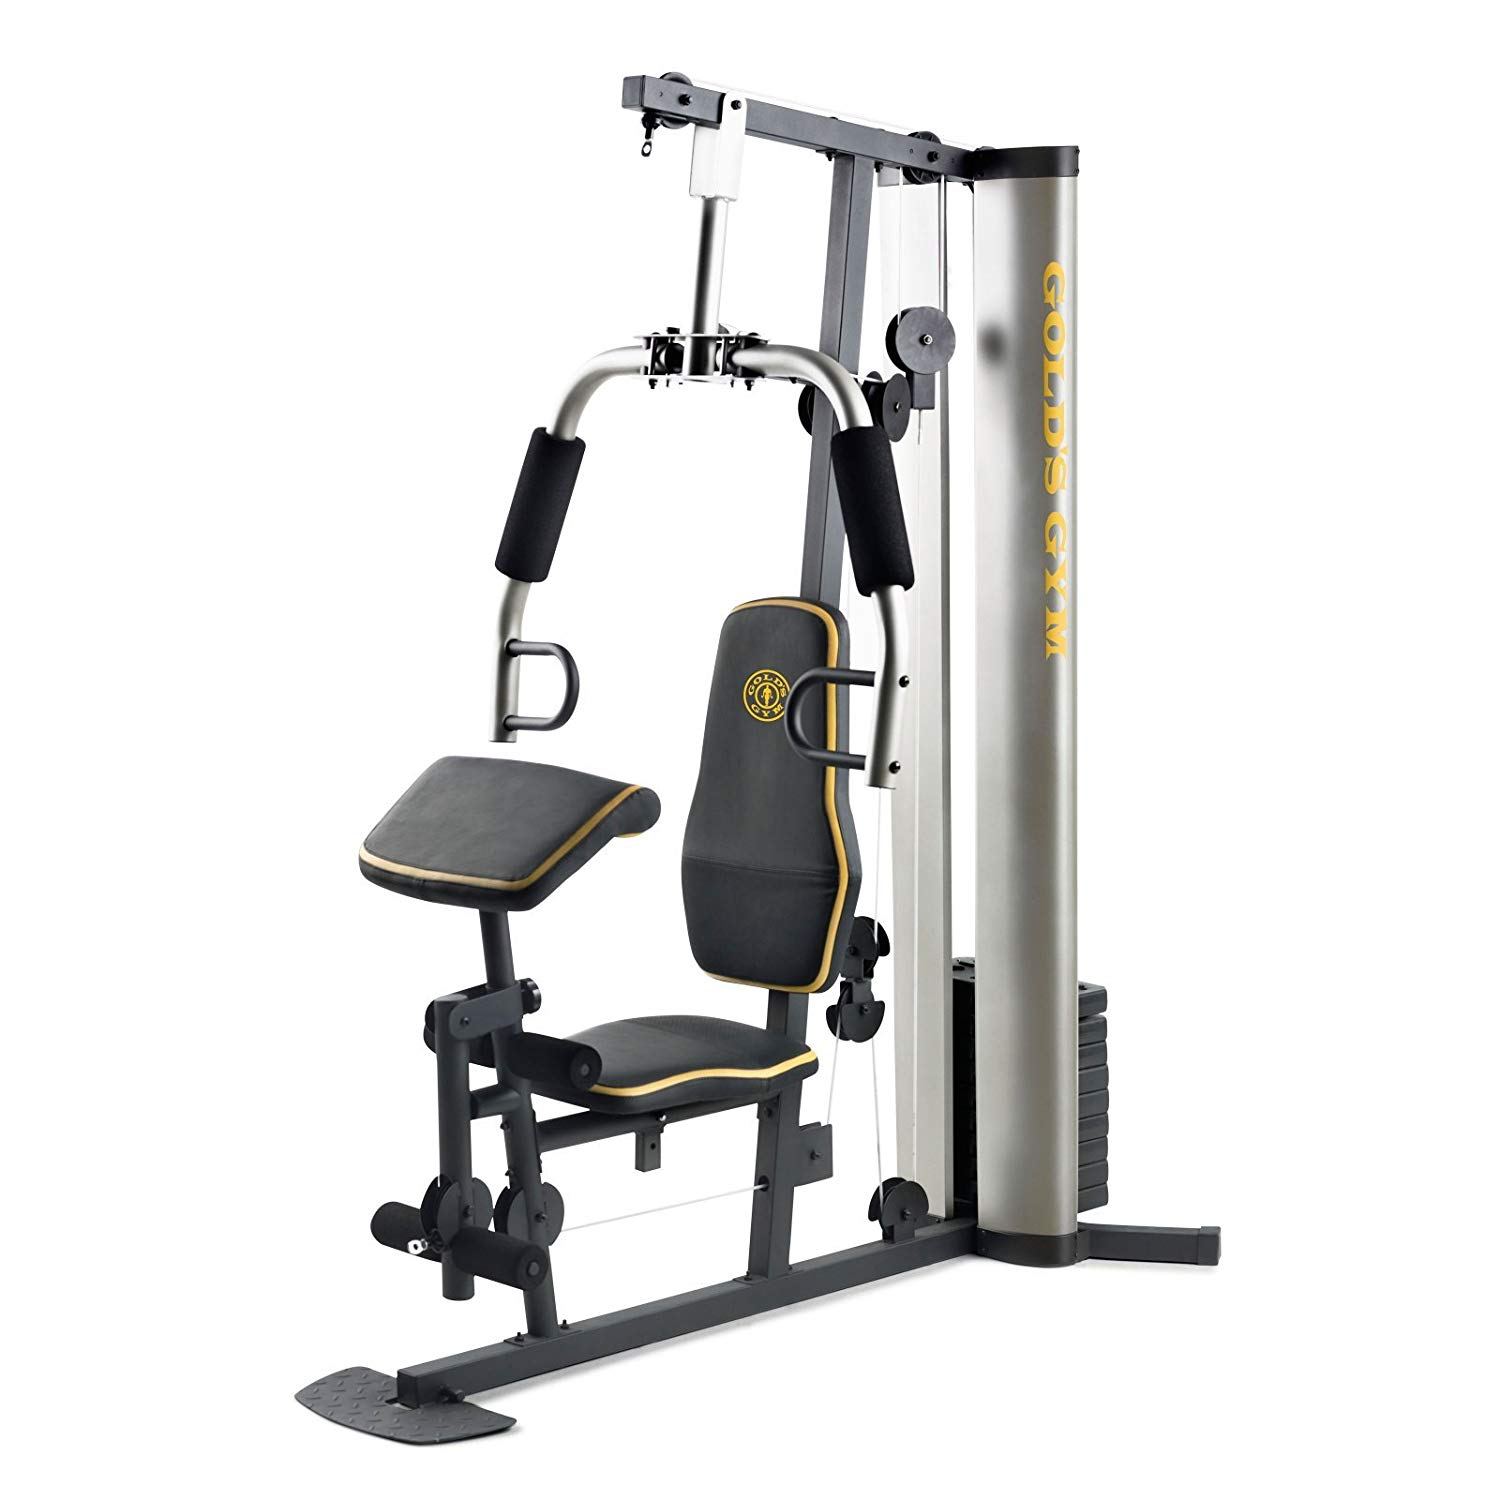 Workout Warehouse Strength Training Gold's Gym XRS 55 System  gallery image 5